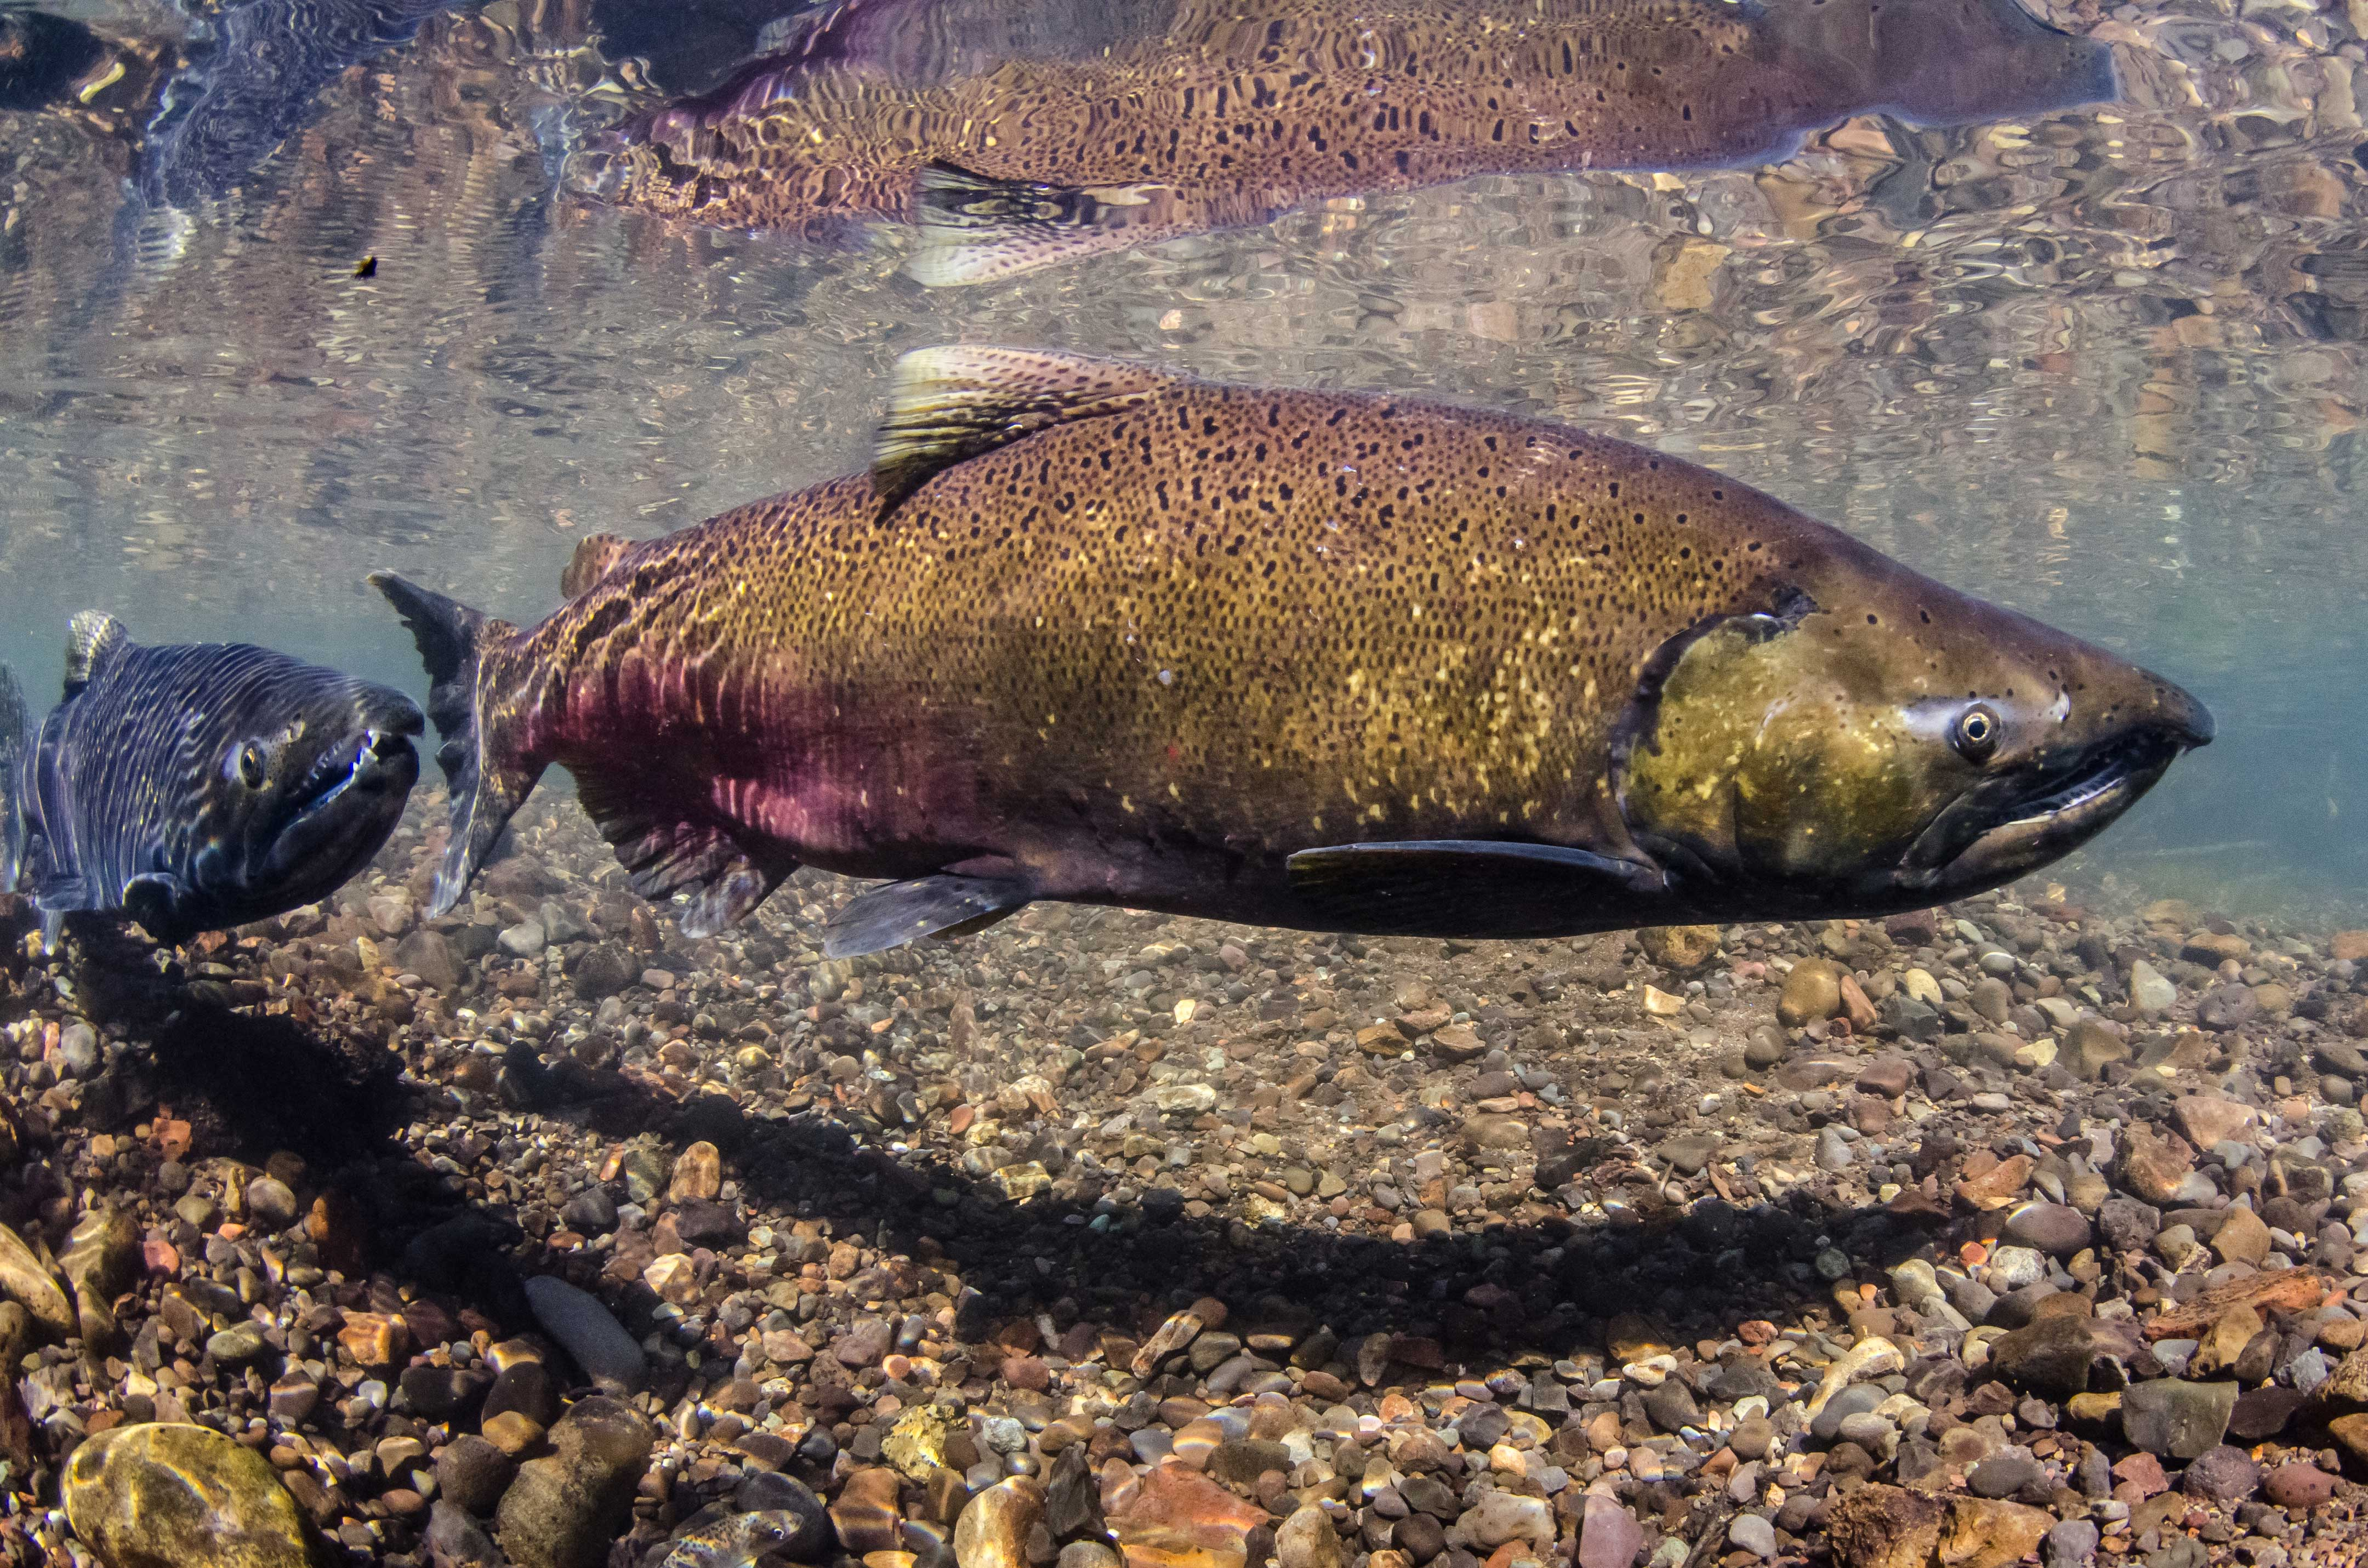 Adult King salmon are much smaller in size compared to 40 years ago, and the environment is to blame. (Photo: Morgan Bond)